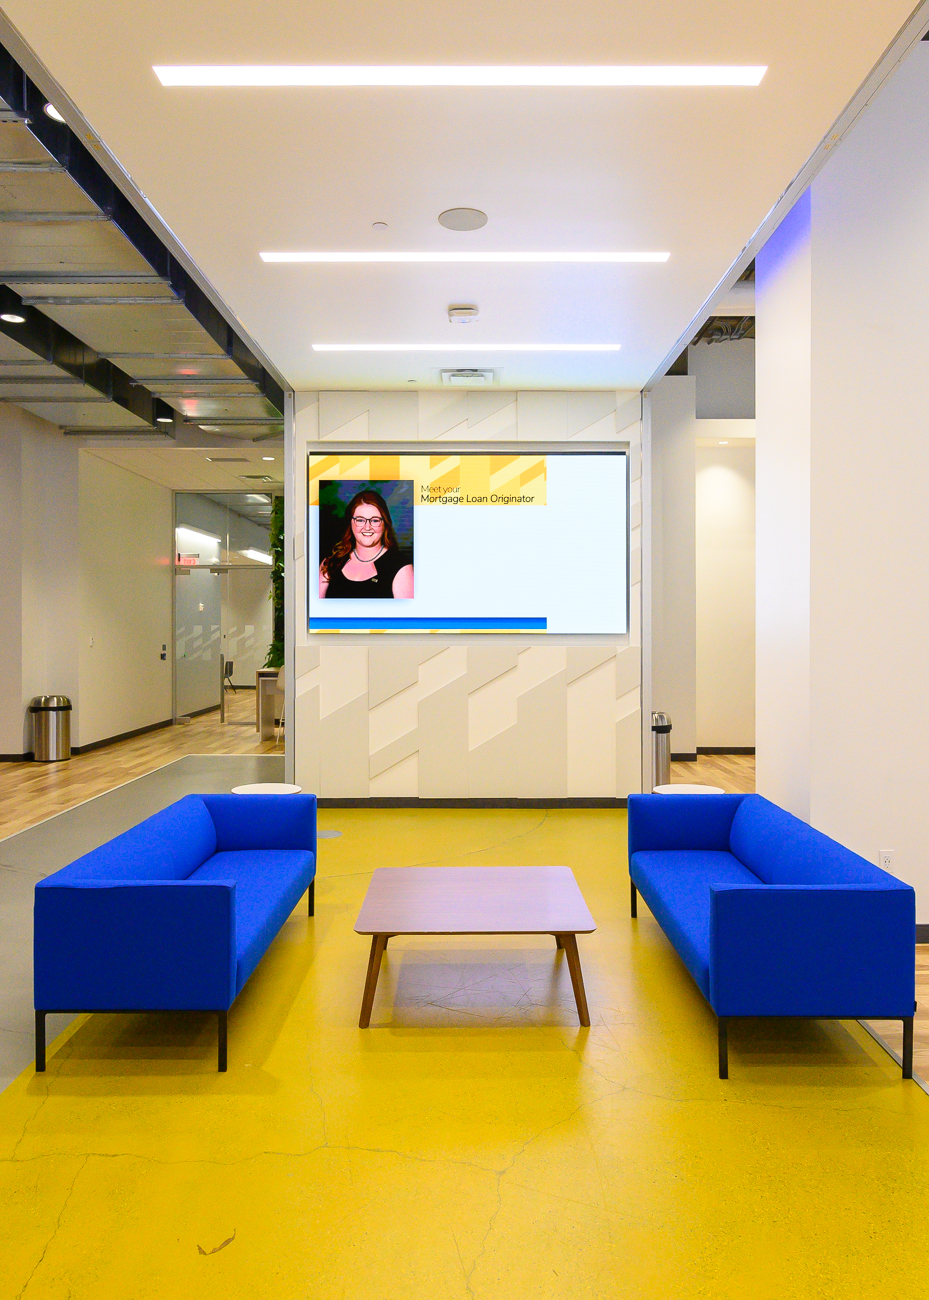 When you walk in, you'll see a yellow floor with a TV screen at the opposite end. This area is ideal for events. Within the TV podium are hookups for built-in speakers and A/V equipment for use in presentations. 4th & Vine is currently averaging 20 events a week, drawing a total of 1,200 people. / Image: Phil Armstrong, Cincinnati Refined // Published: 2.25.20